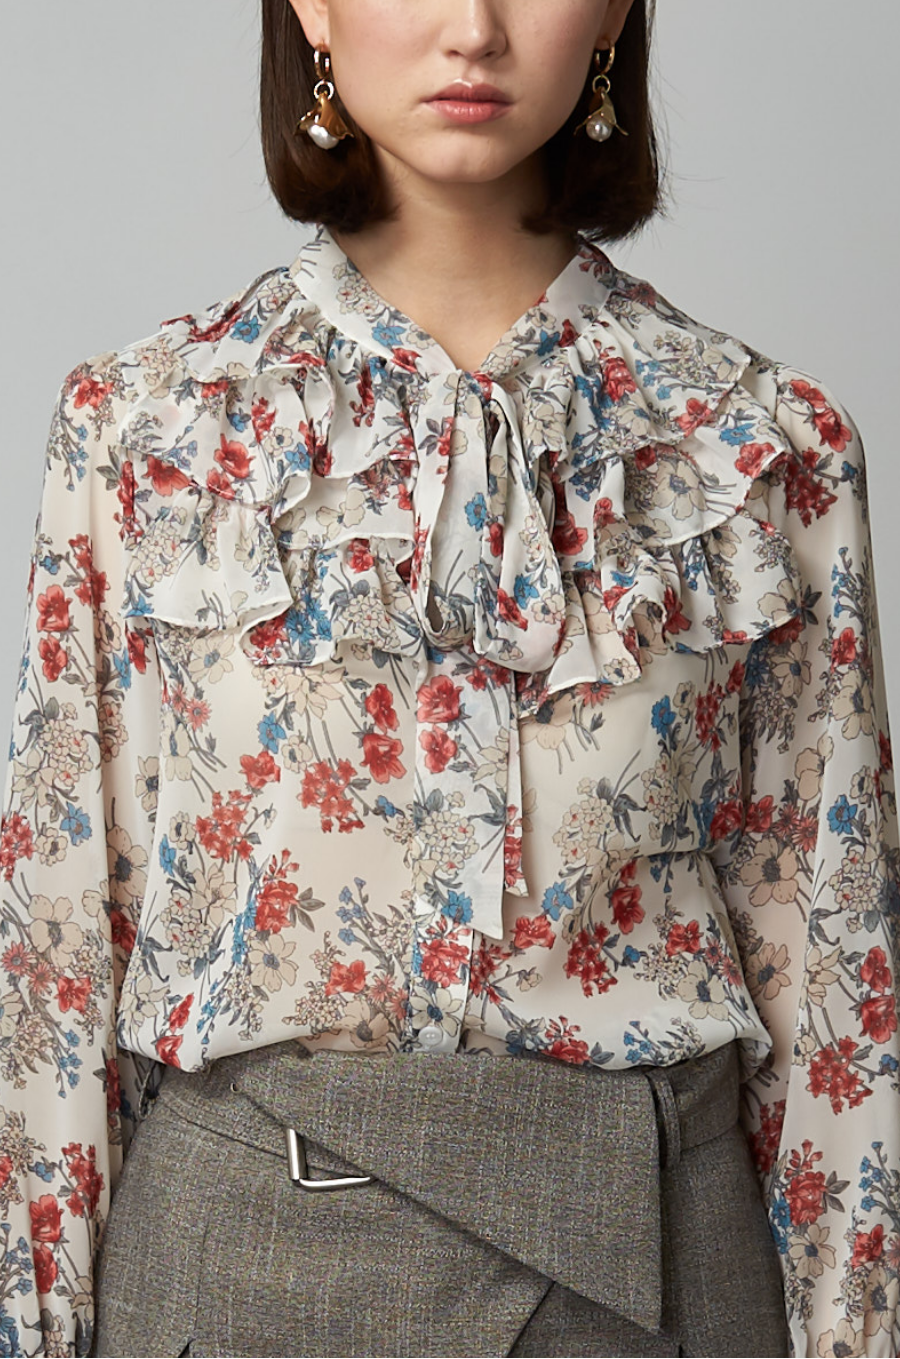 OLIVIA NZ Store online | Paige Floral Ruffle Blouse / Cream